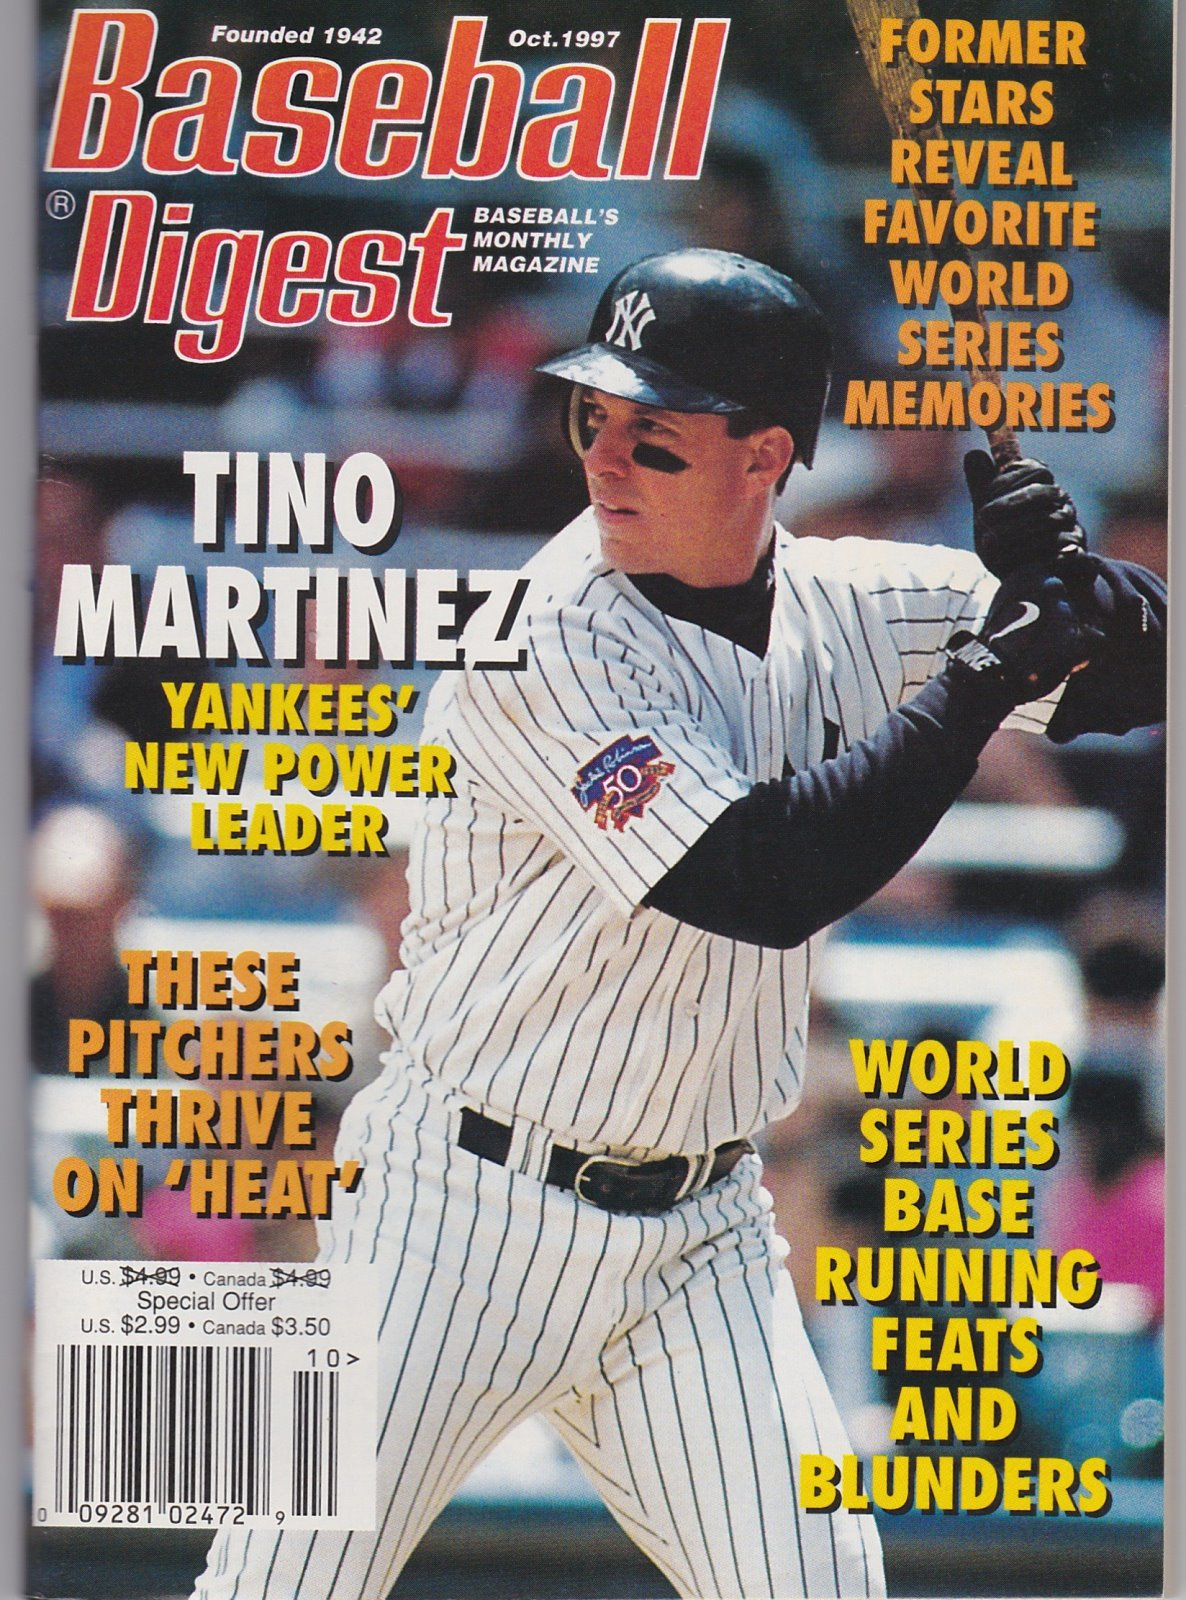 Baseball Digest Baseball's Monthly Magazine Oct. 1997